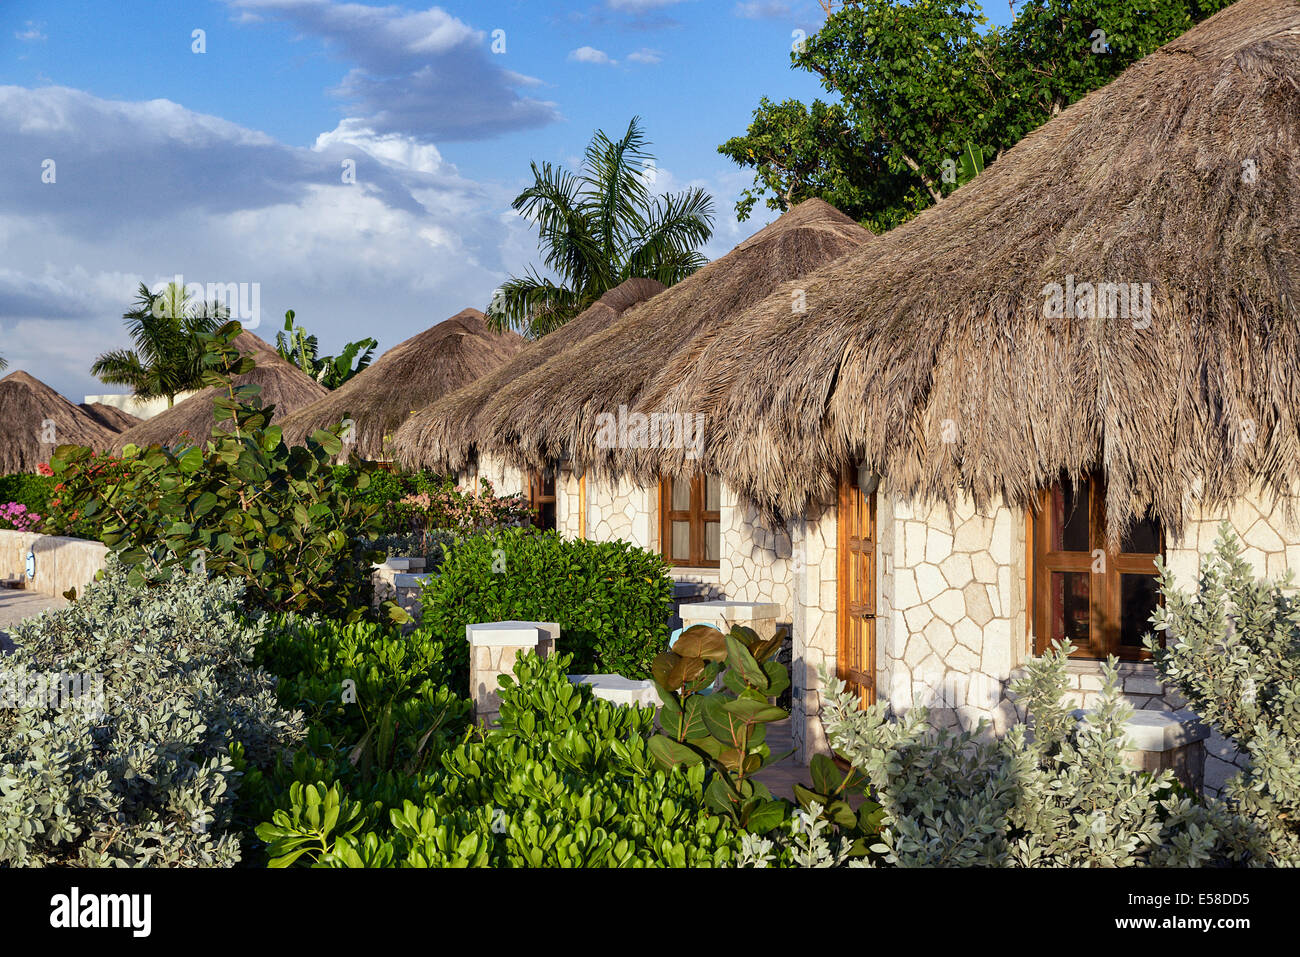 The Spa Retreat boutique hotel cottages with thatched roof. - Stock Image